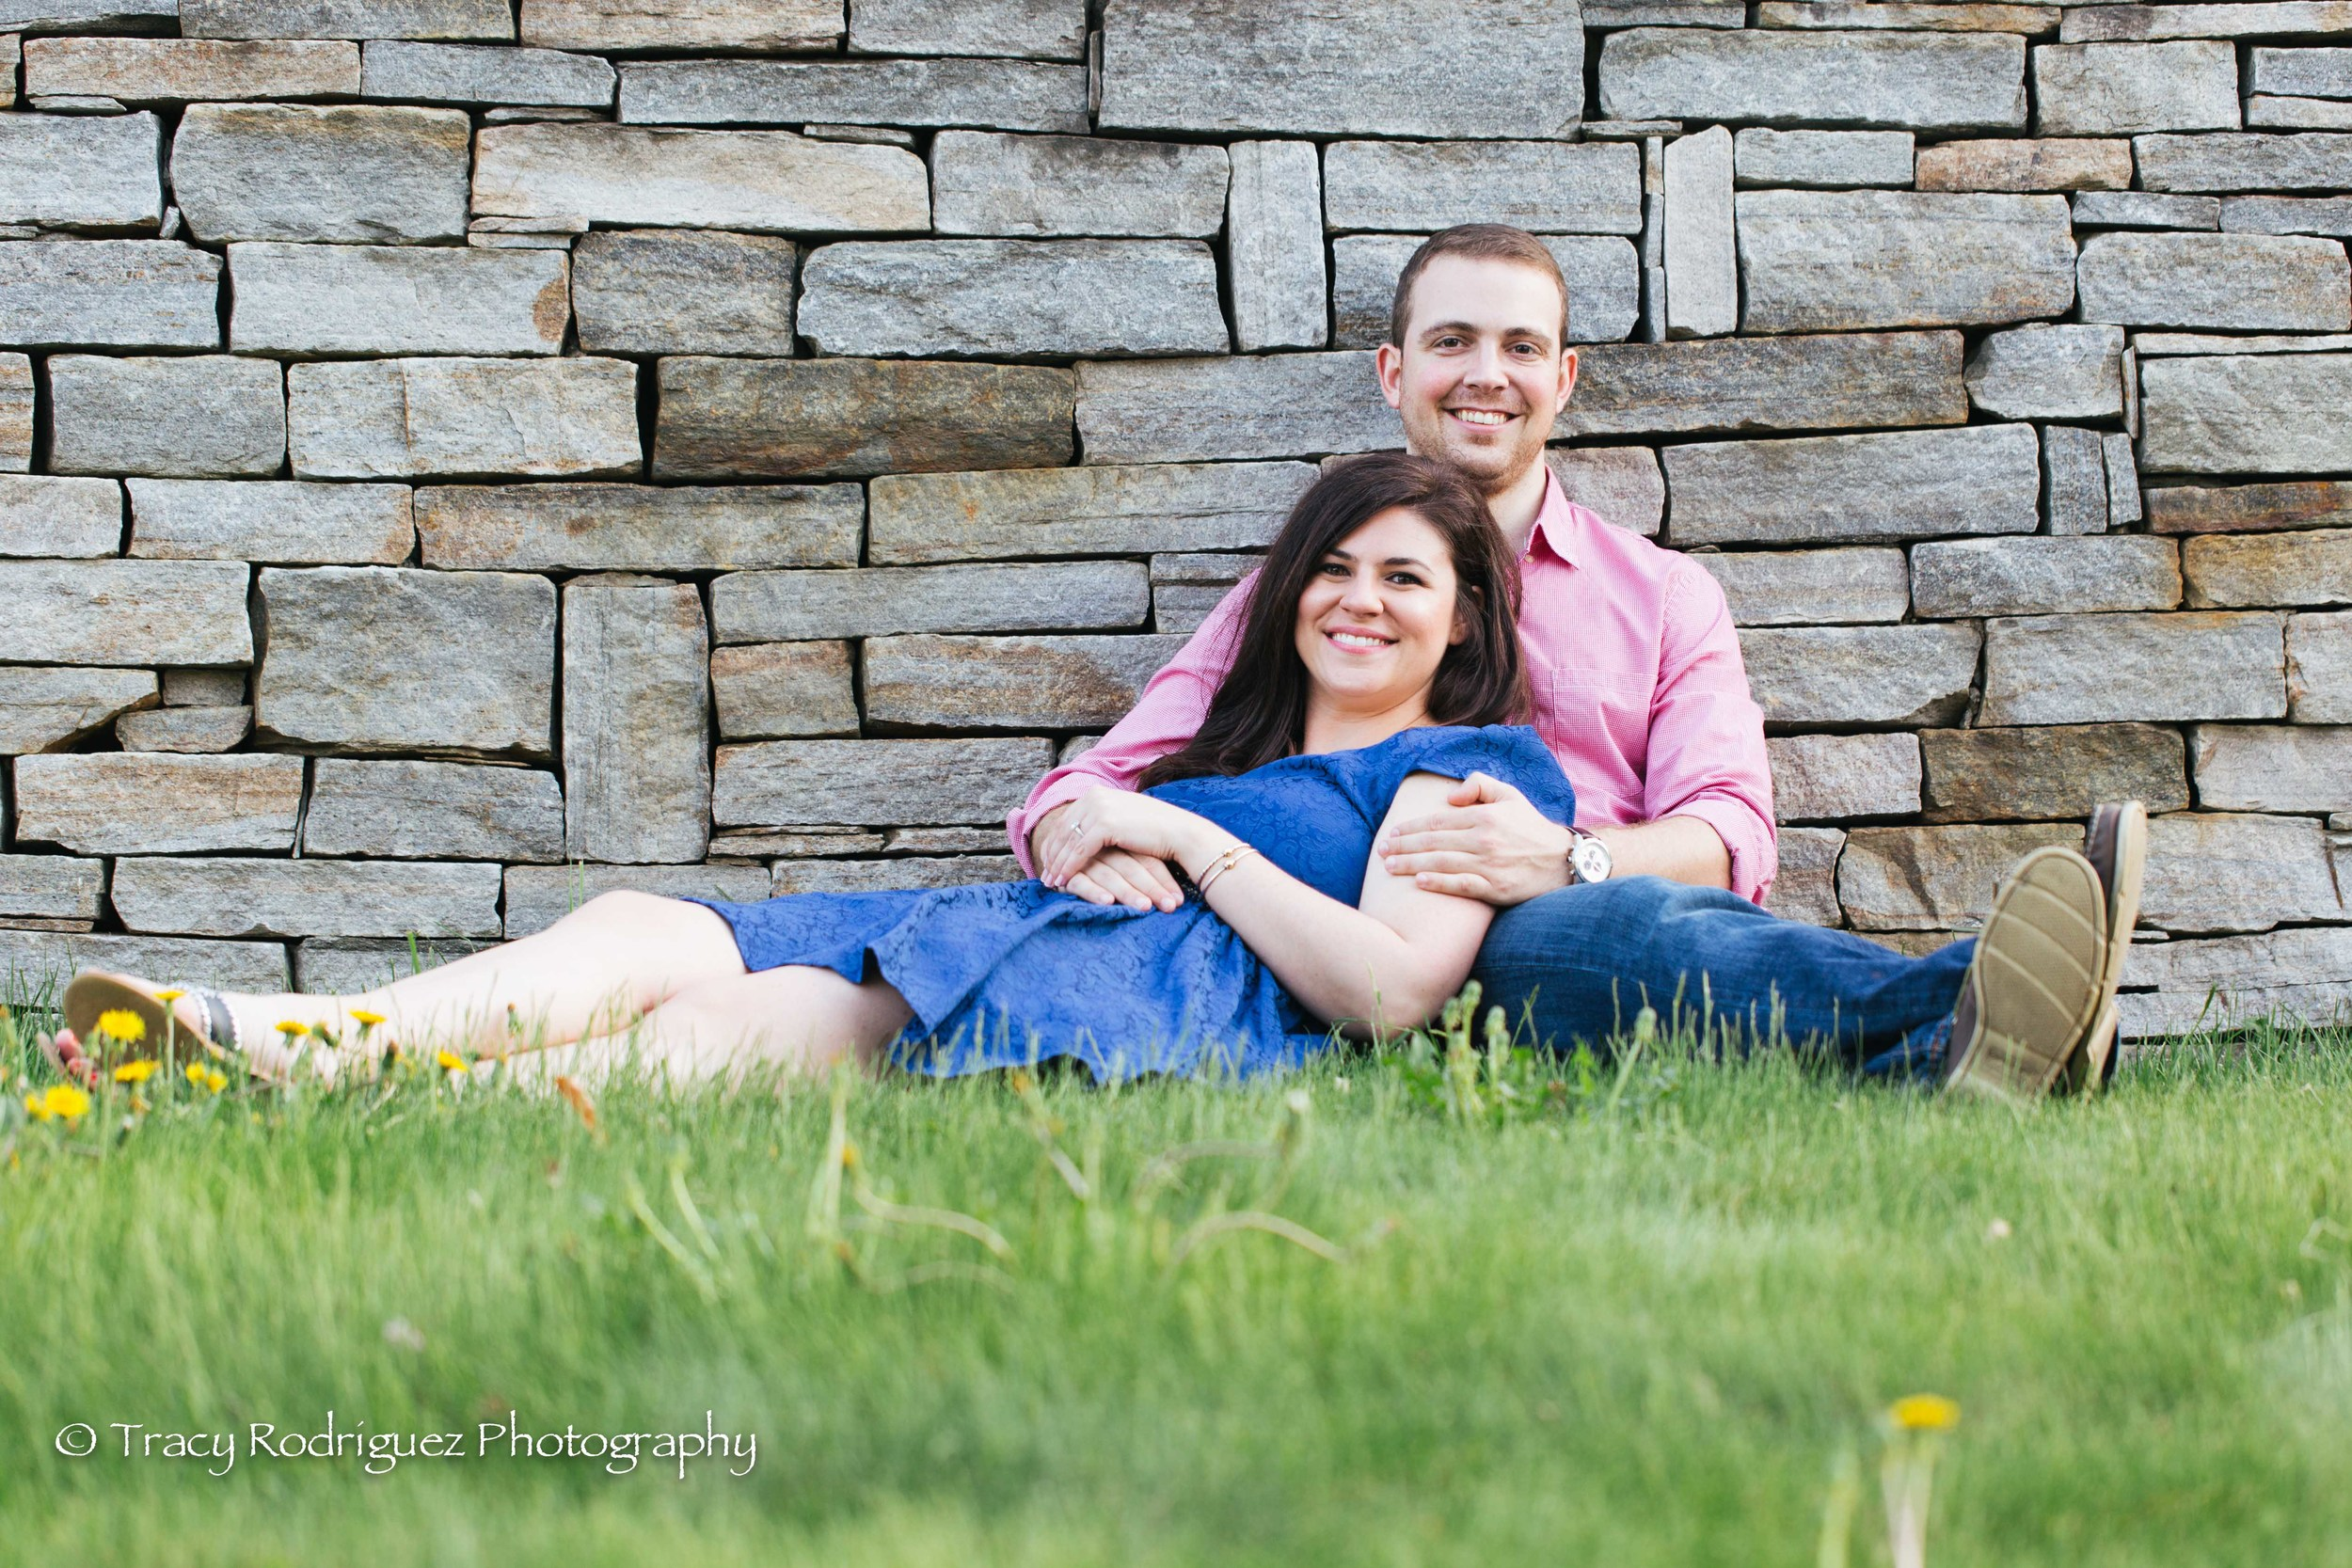 TracyRodriguezPhotography-LowRes-35.jpg